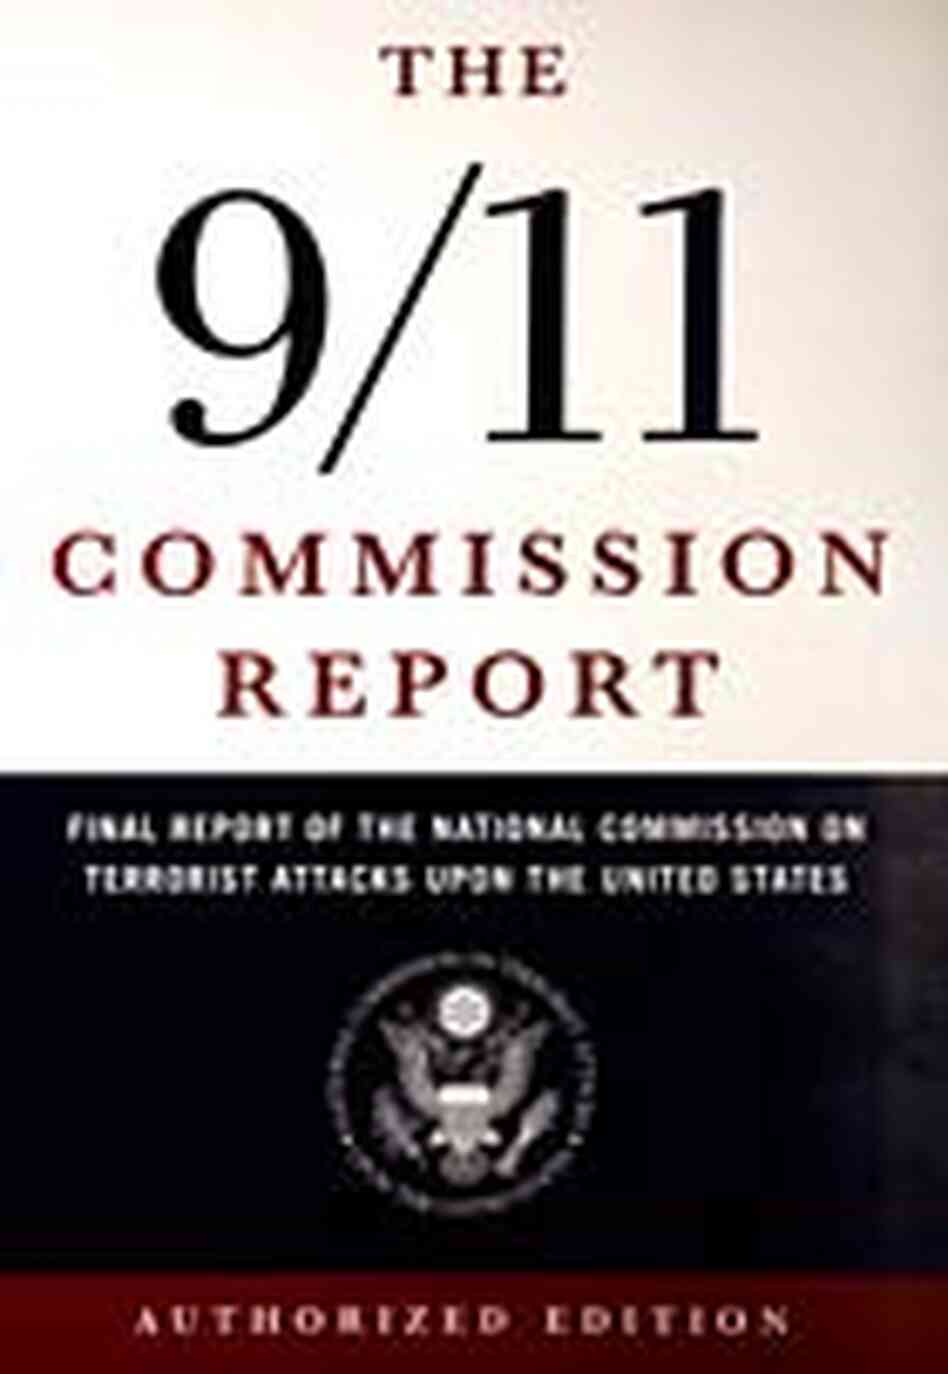 The cover of the commission's report.